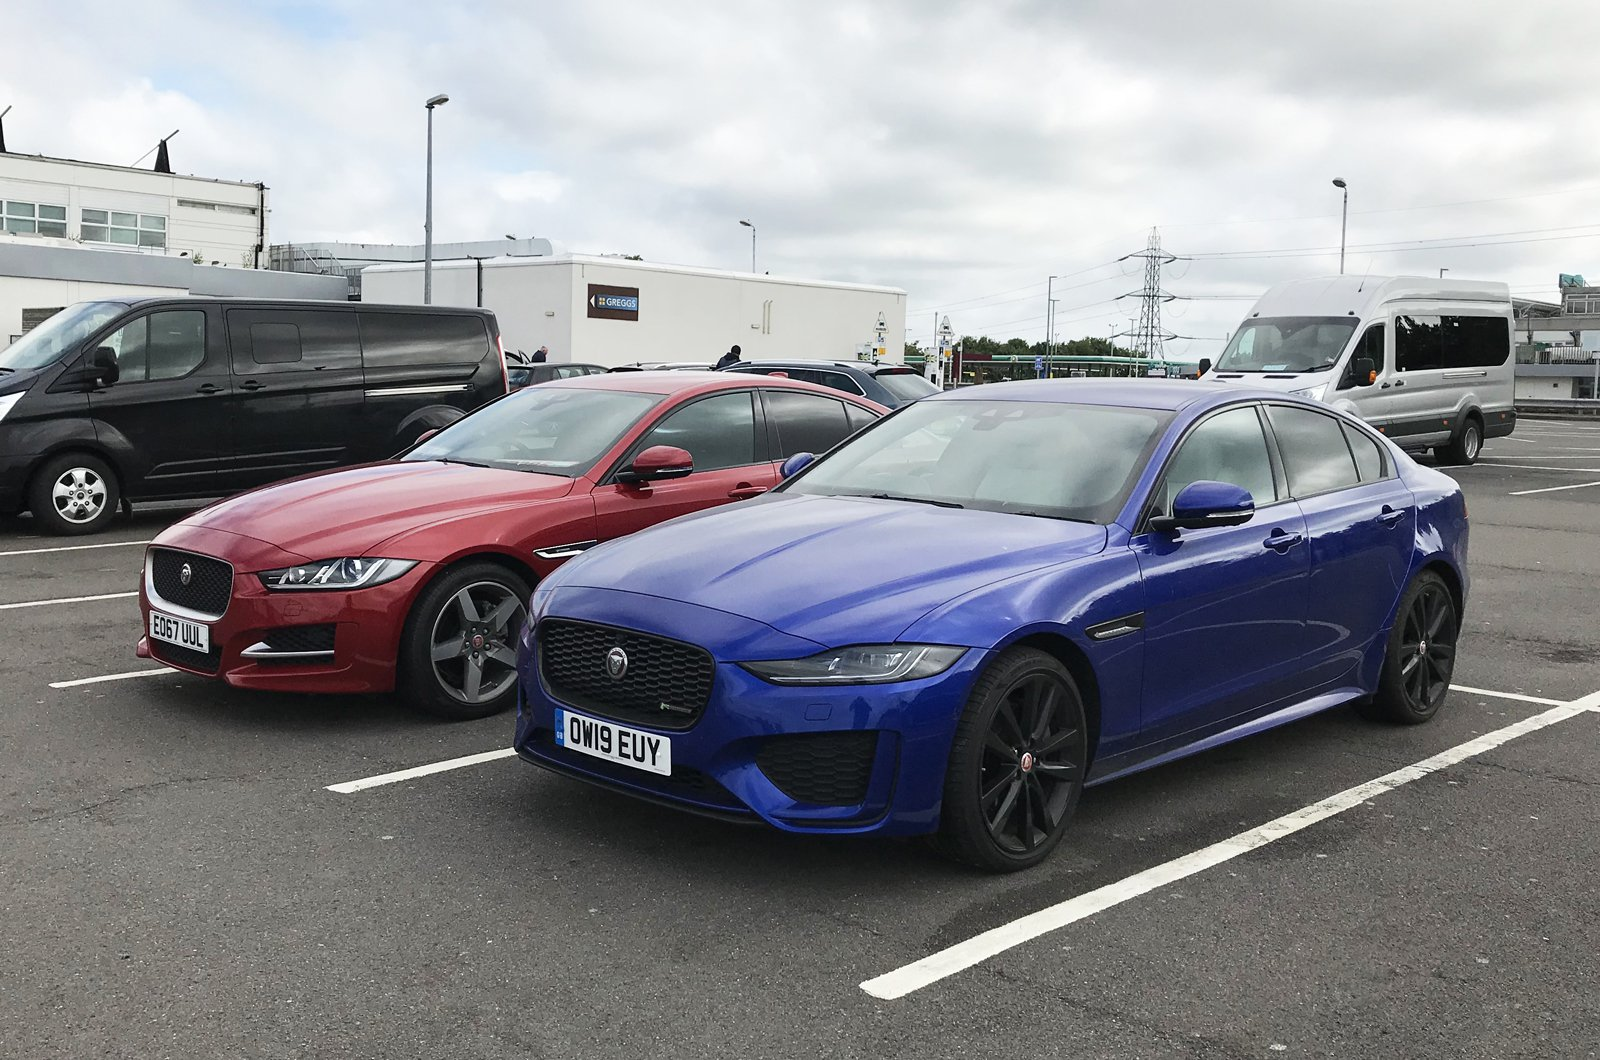 LT Jaguar XE with old XE - front